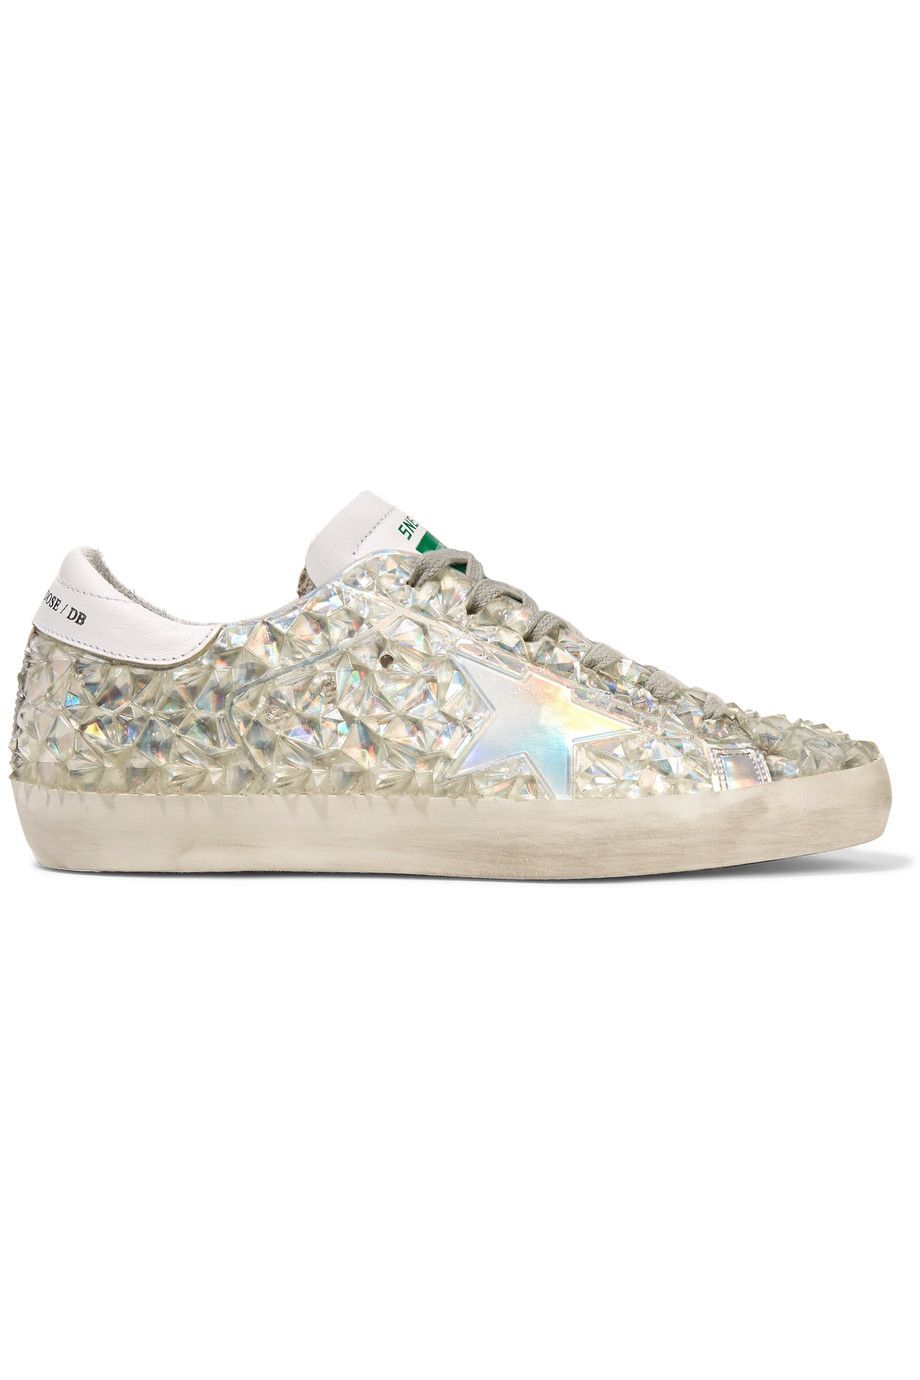 Latest Golden Goose White Fuxia Superstar Sneakers For Women Outlet